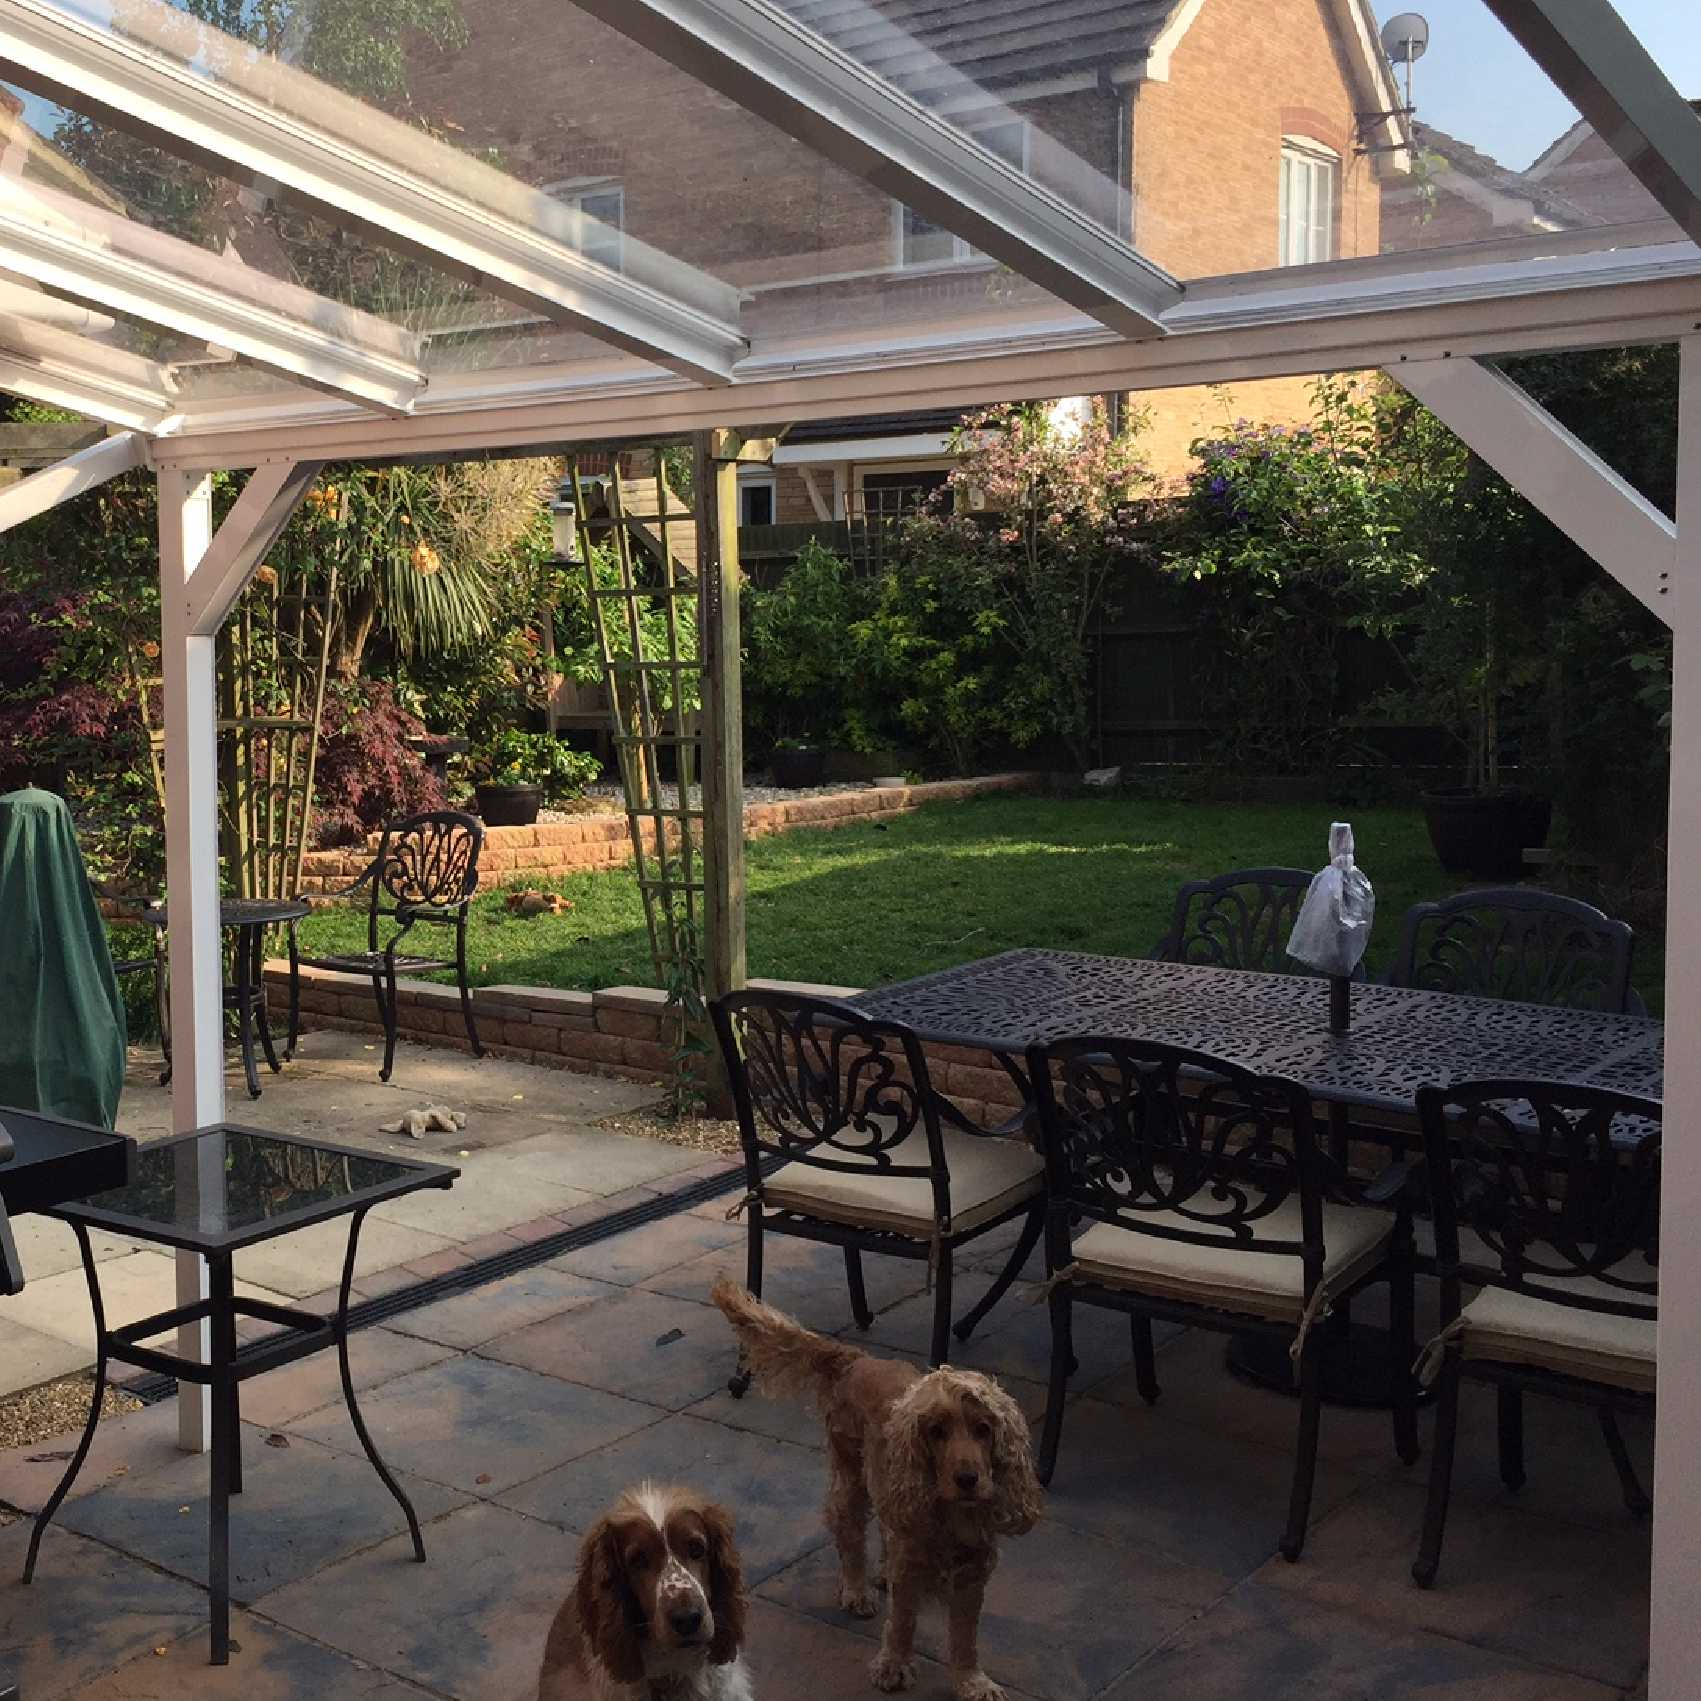 Affordable Omega Smart White Lean-To Canopy with 6mm Glass Clear Plate Polycarbonate Glazing - 4.2m (W) x 2.5m (P), (3) Supporting Posts